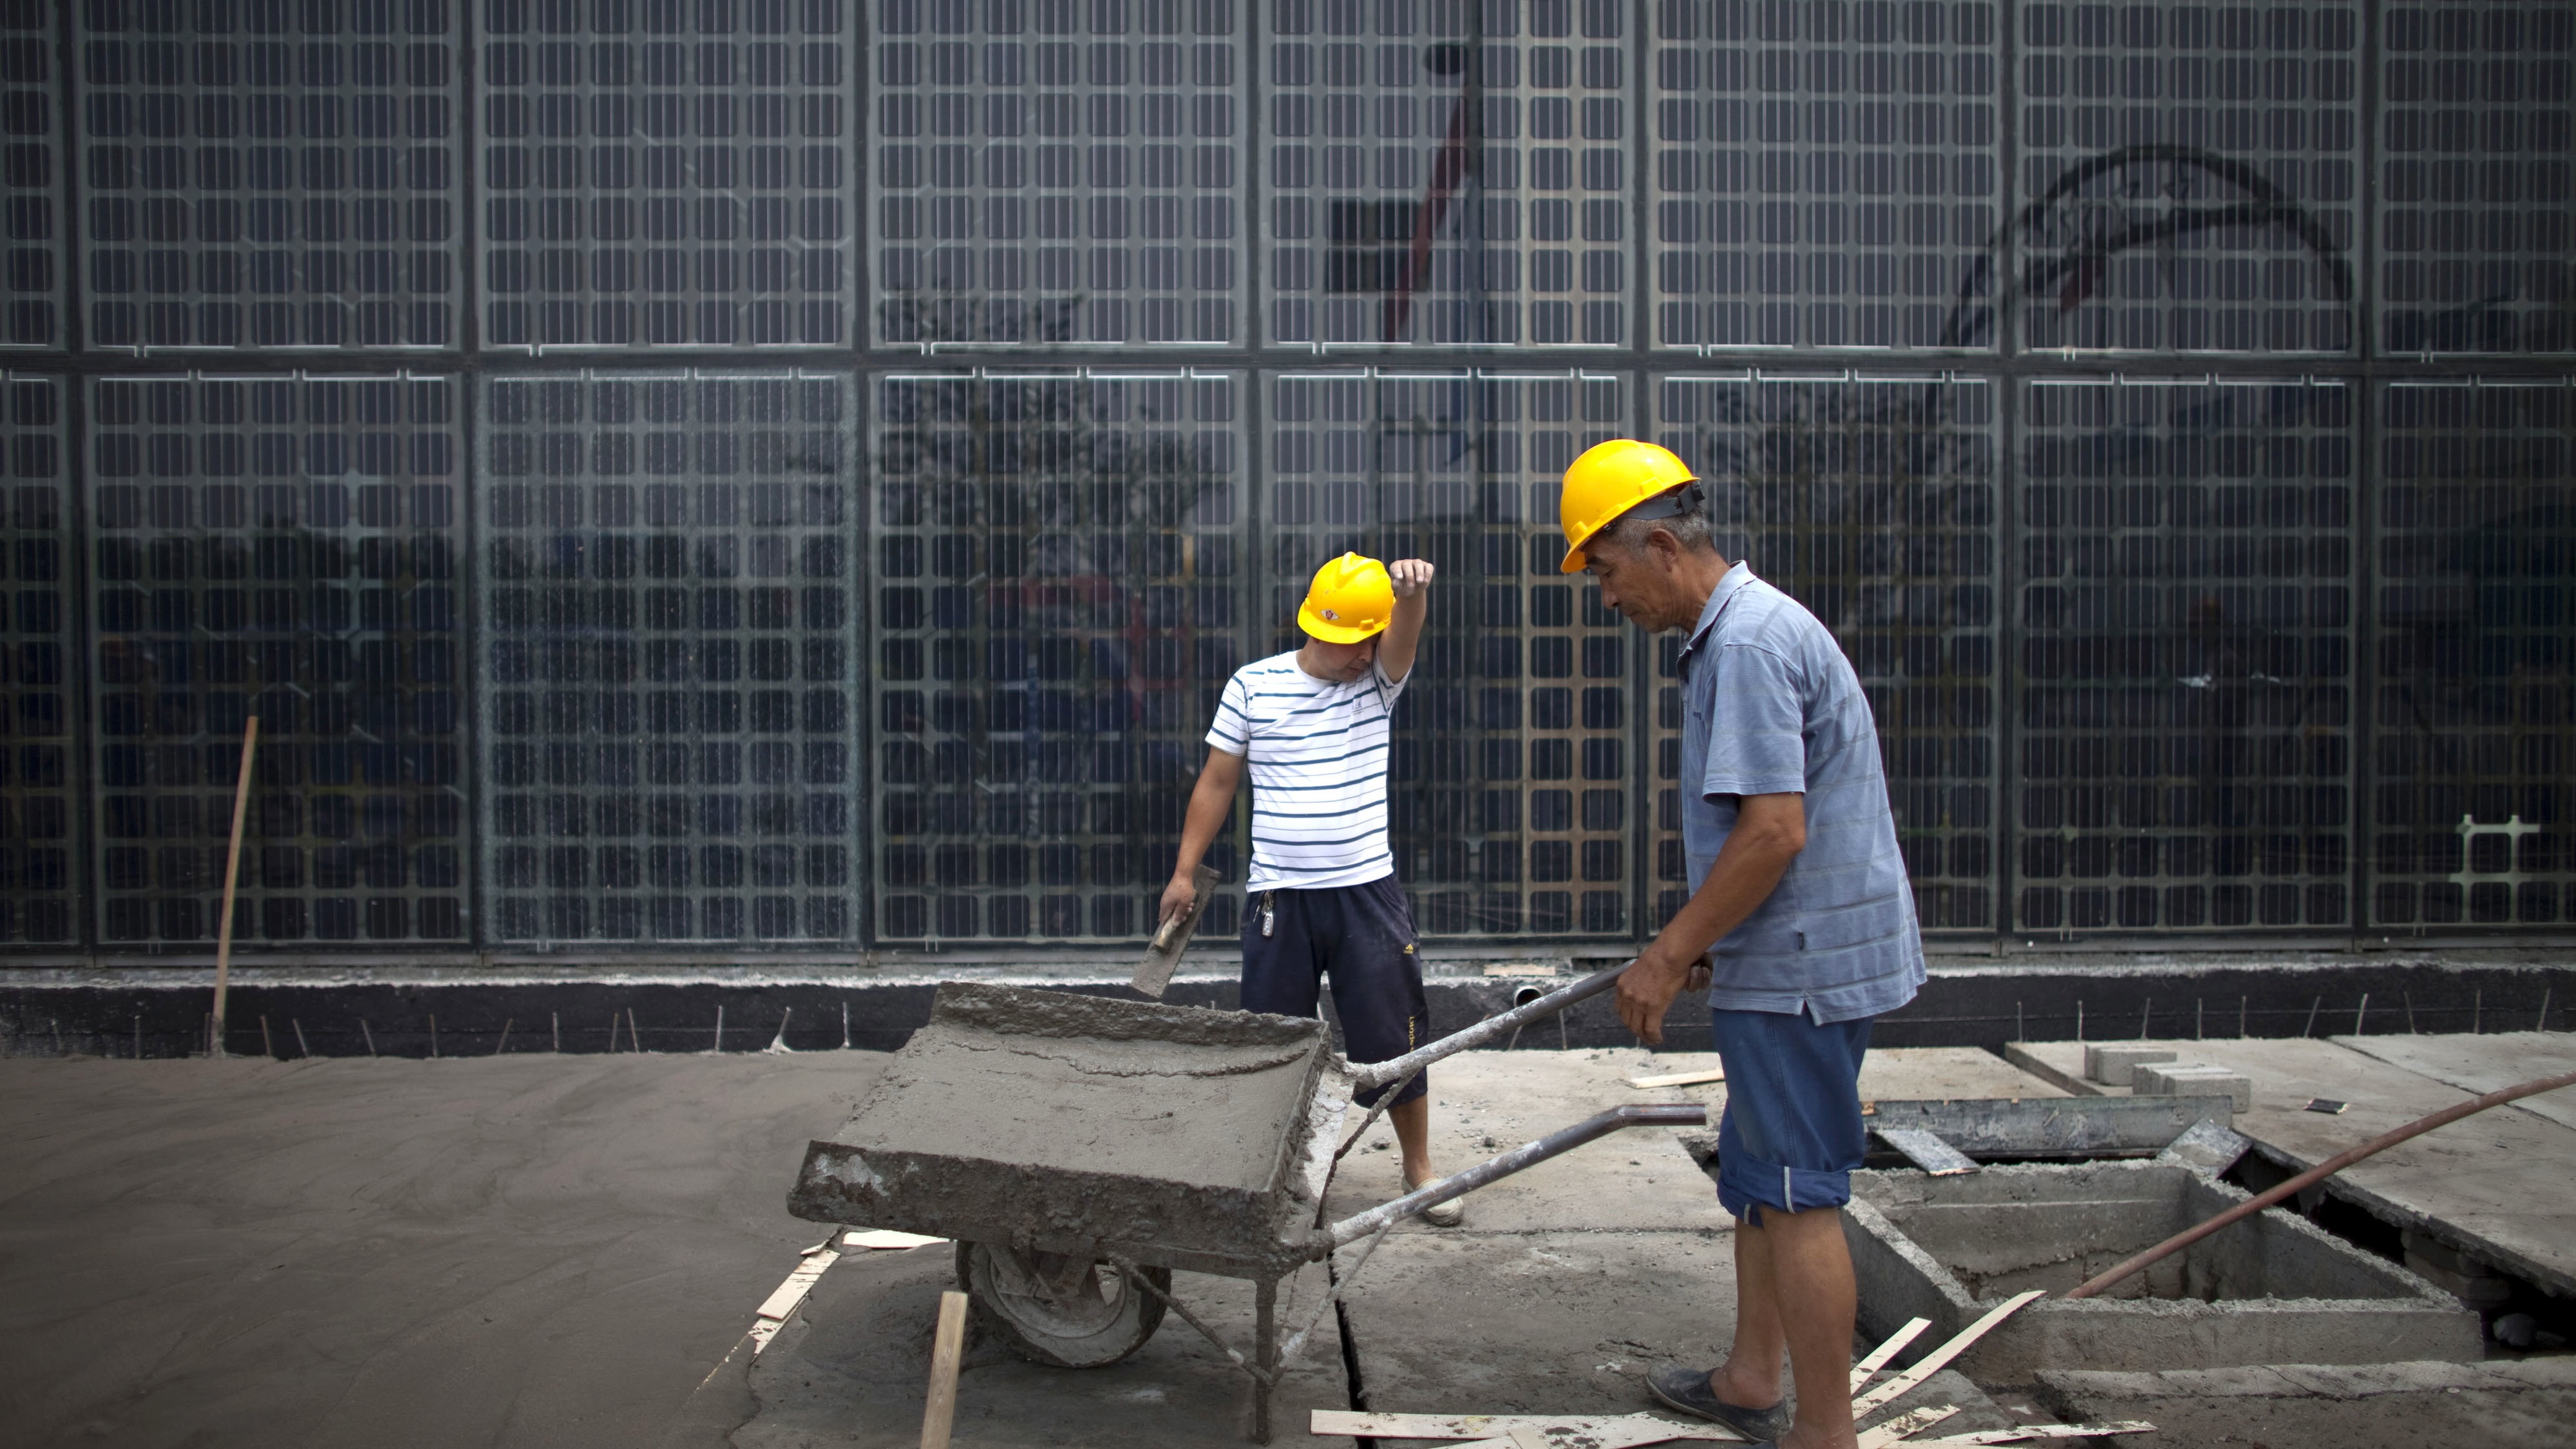 Workers pour and level cement outside a building showing solar walls at a factory of Yingli Green Energy Holding Co. in Baoding, in northern China's Hebei province, Monday, June 20, 2011. (AP Photo/Alexander F. Yuan)